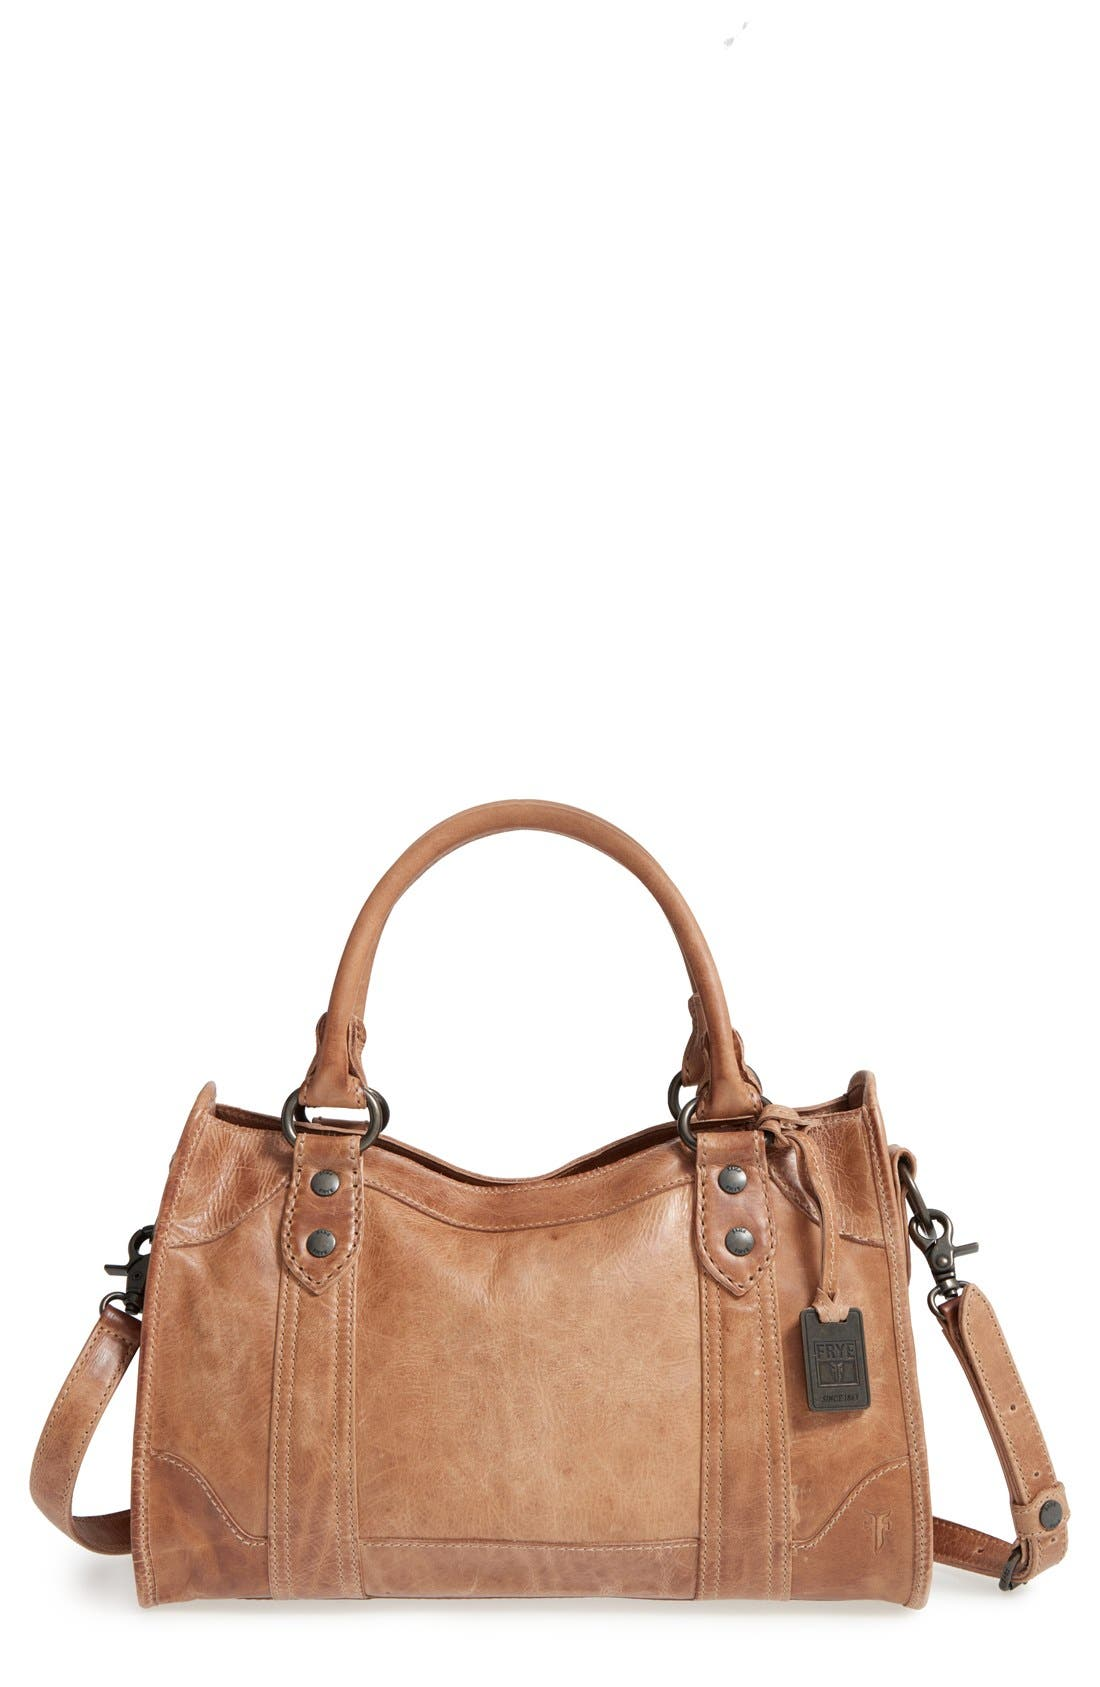 Alternate Image 1 Selected - Frye 'Melissa' Washed Leather Satchel